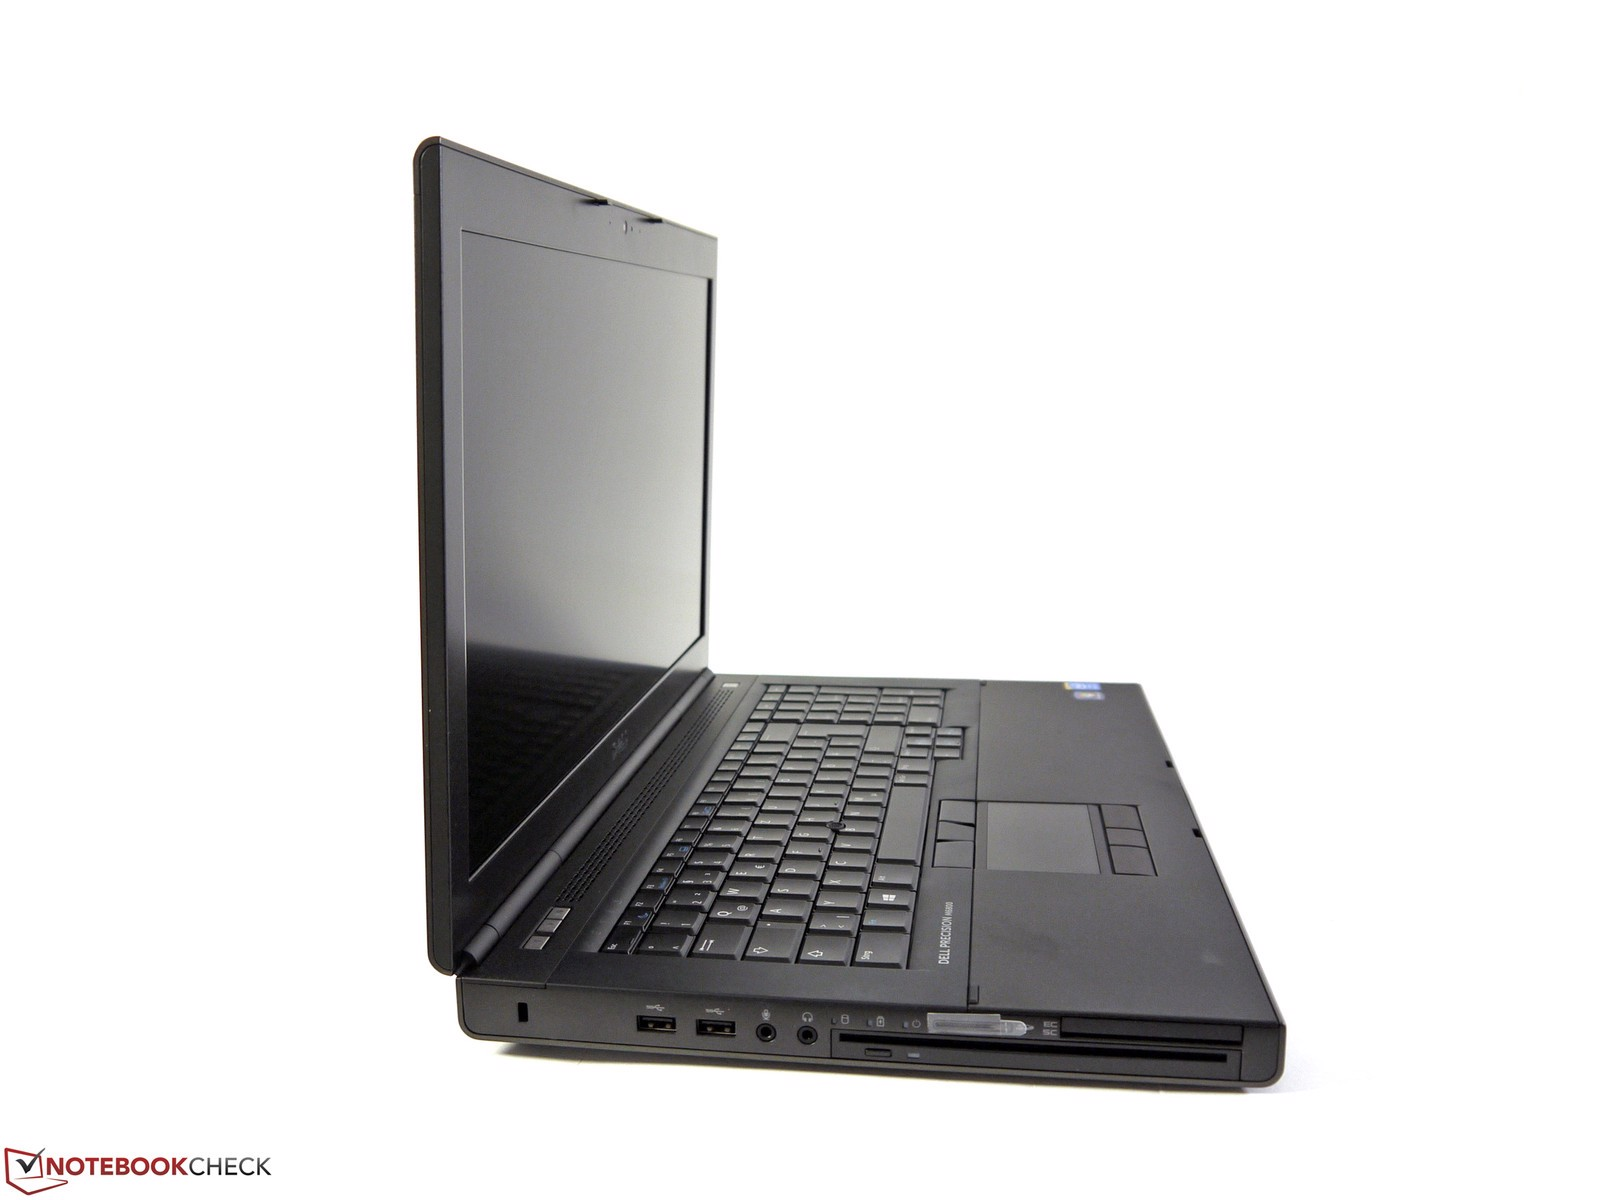 Dell Precision M6800 AMD firepro m6100